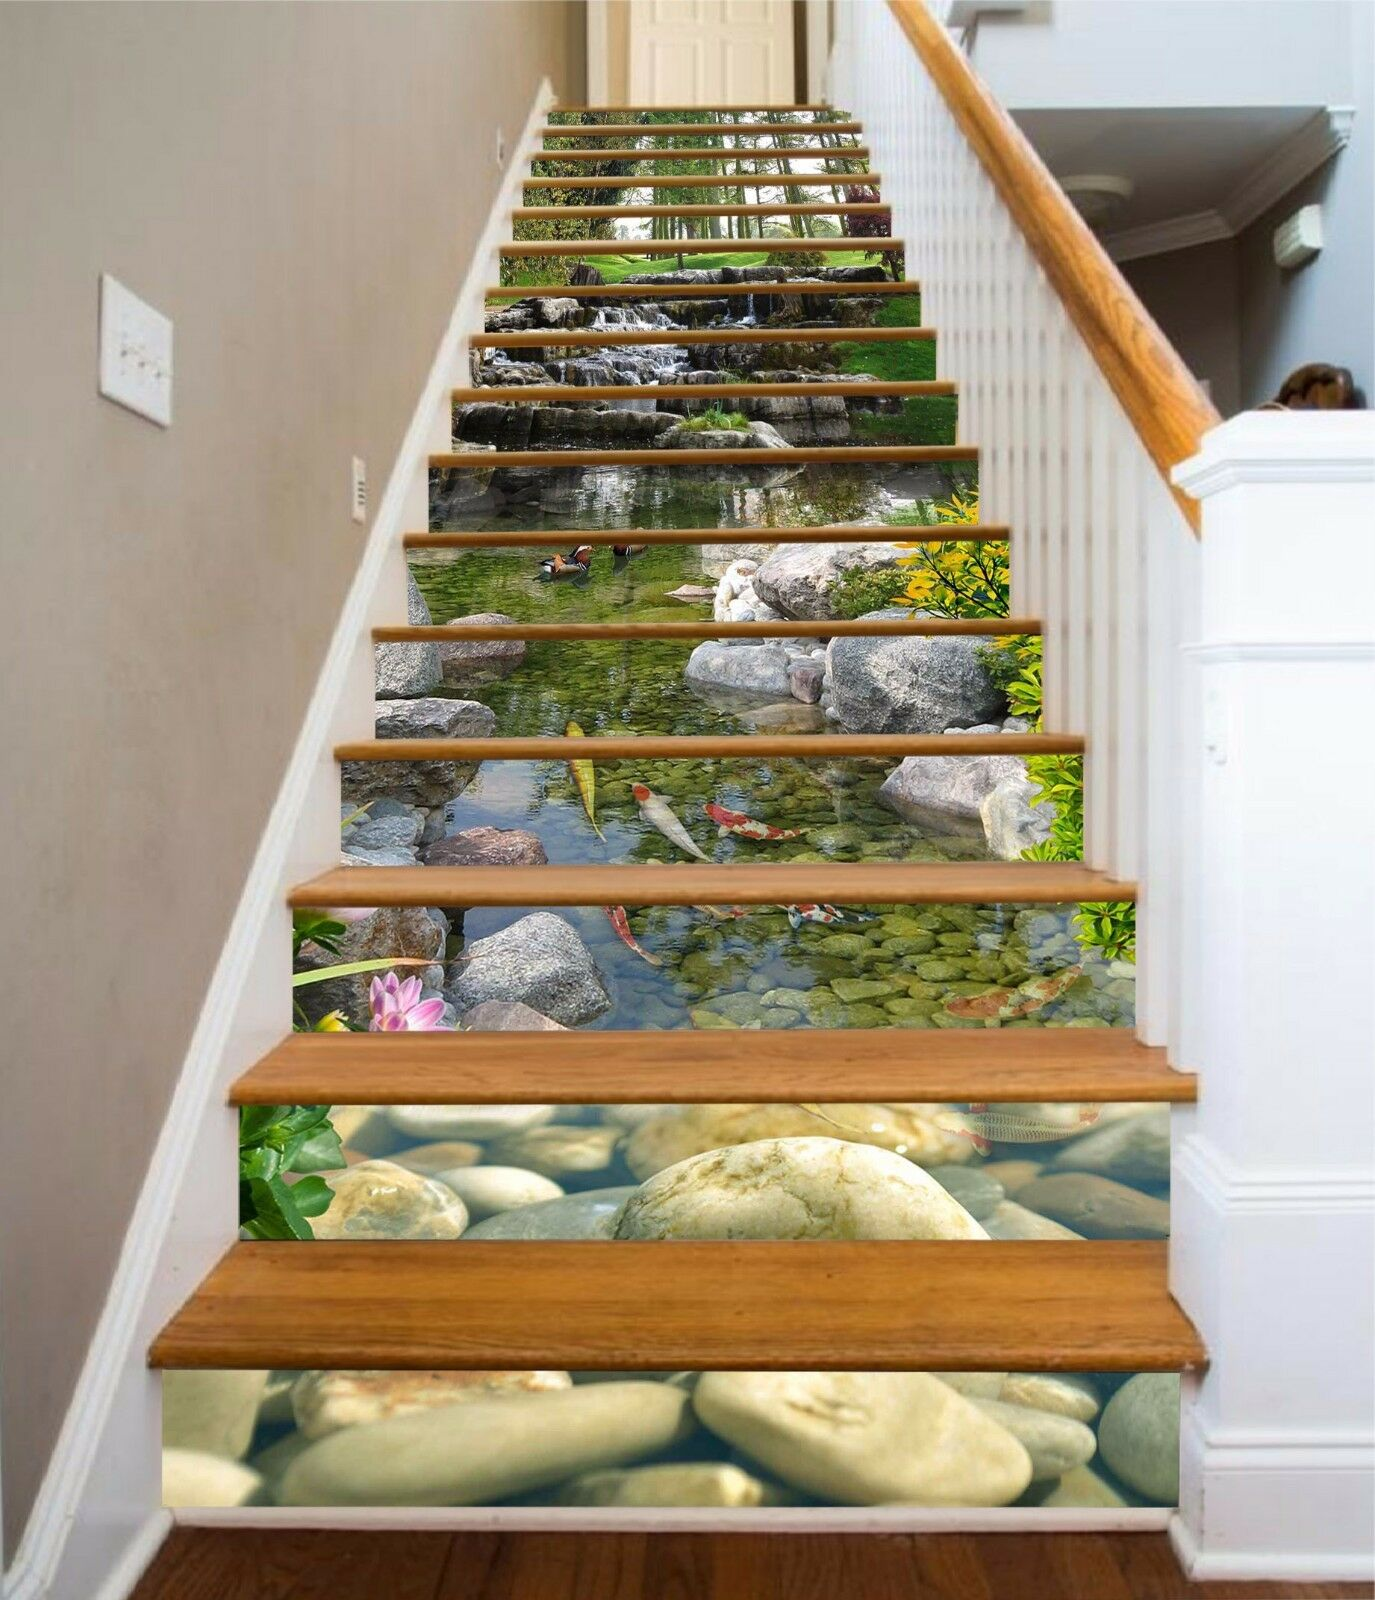 3D Stone River 659 Stair Risers Decoration Photo Mural Vinyl Decal Wallpaper UK